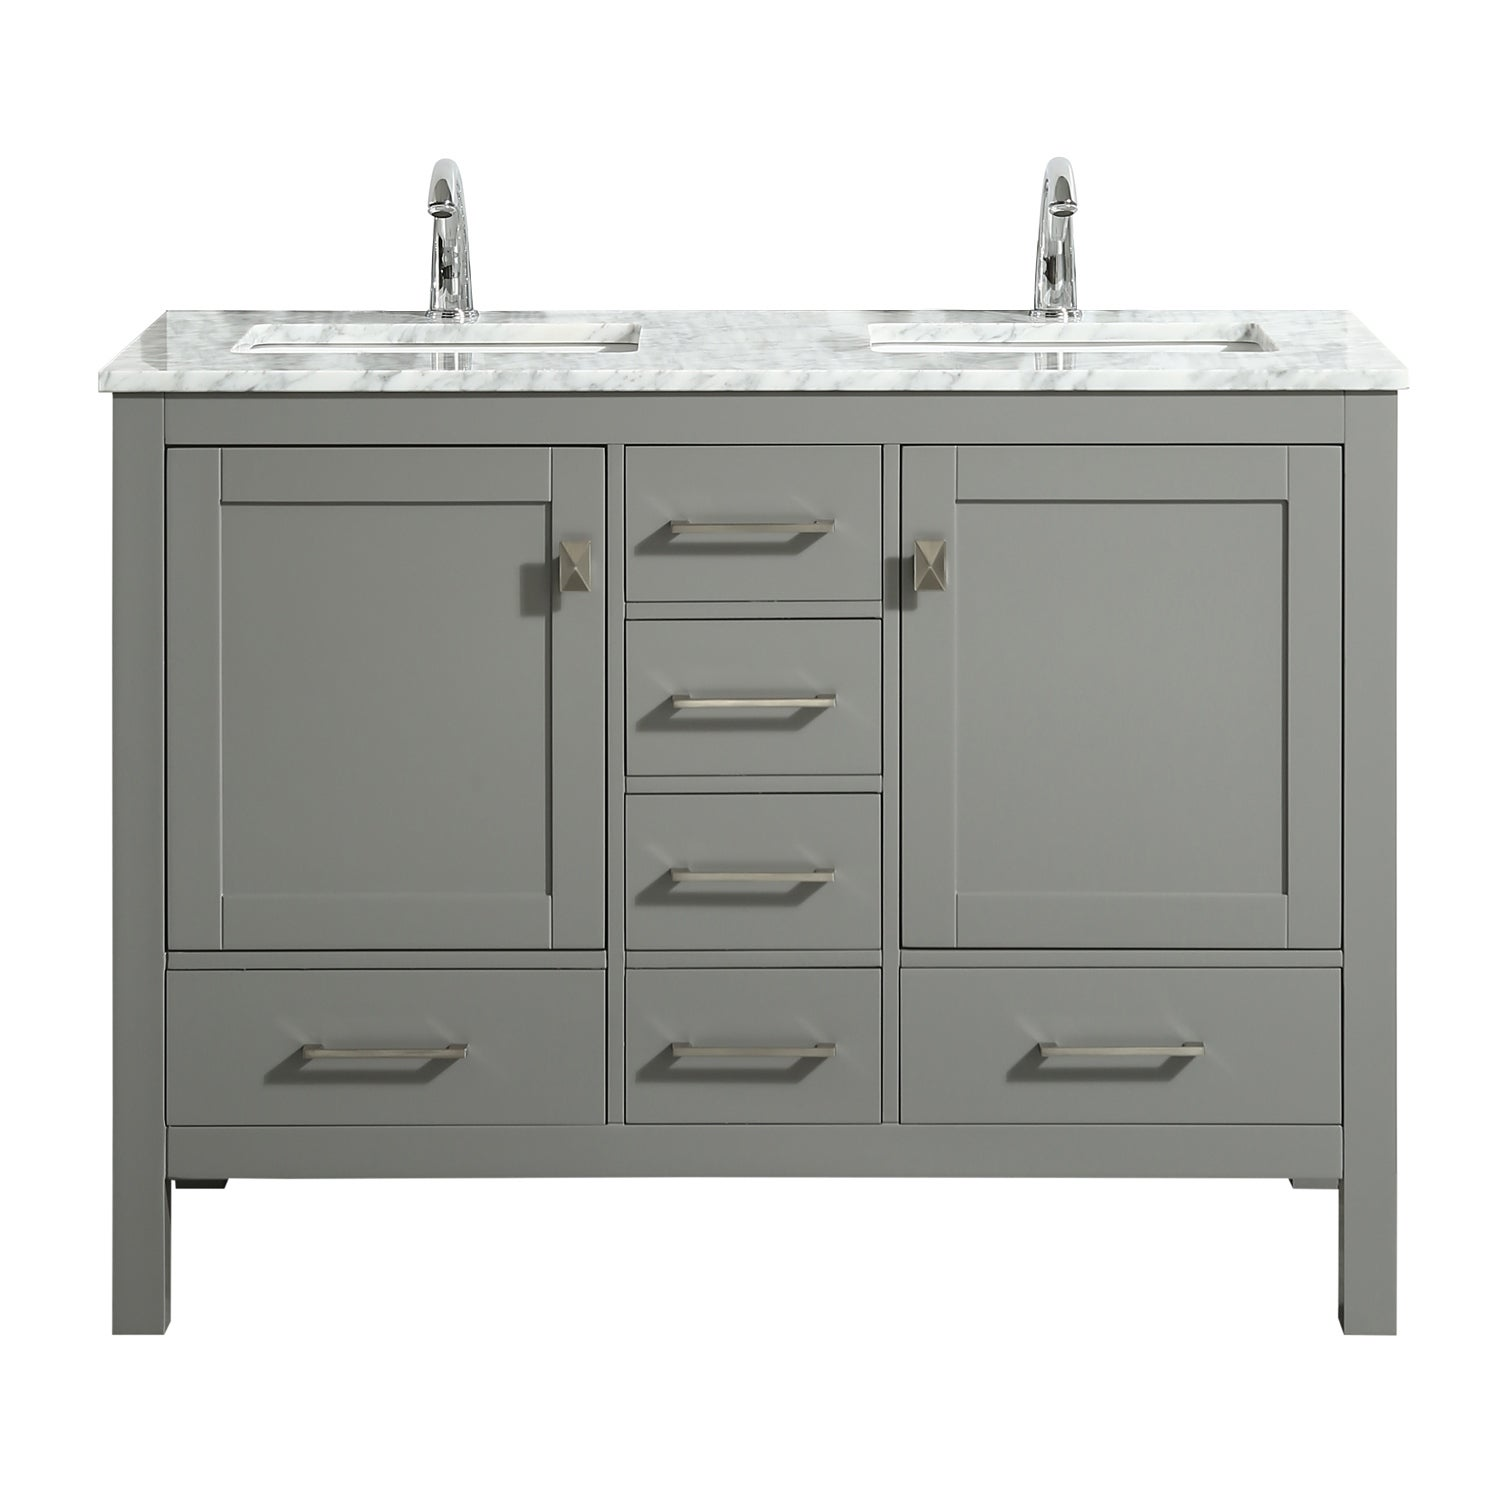 Eviva London 48 X 18 Gray Transitional Double Sink Bathroom Vanity W White Carrara Top Overstock 23565165